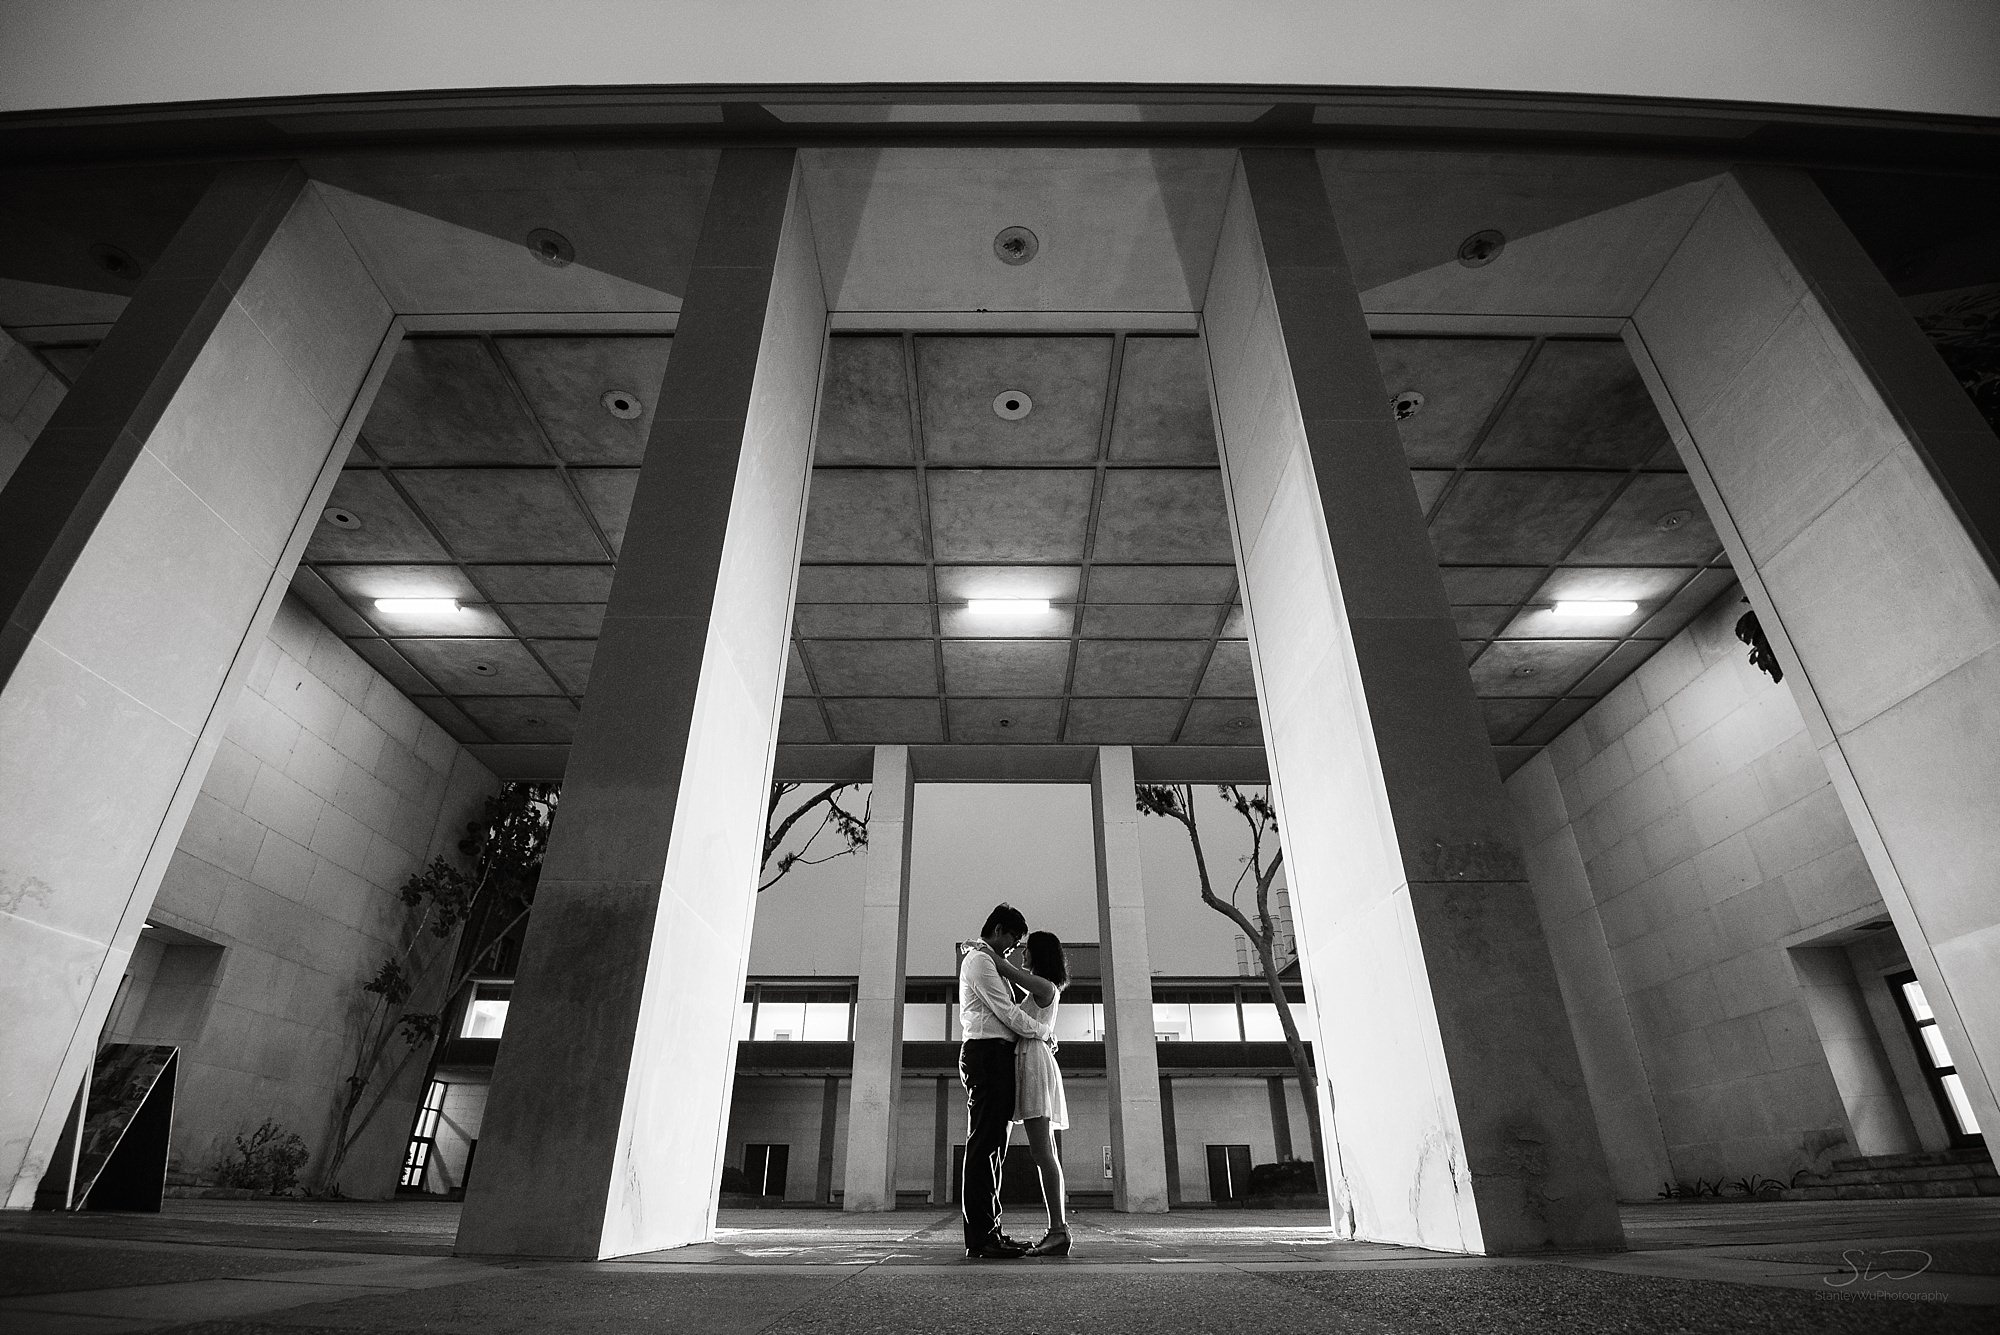 edgy contrasty black and white graduation senior portrait and ultrawide shot of a couple standing and embracing each other at ucla in los angeles